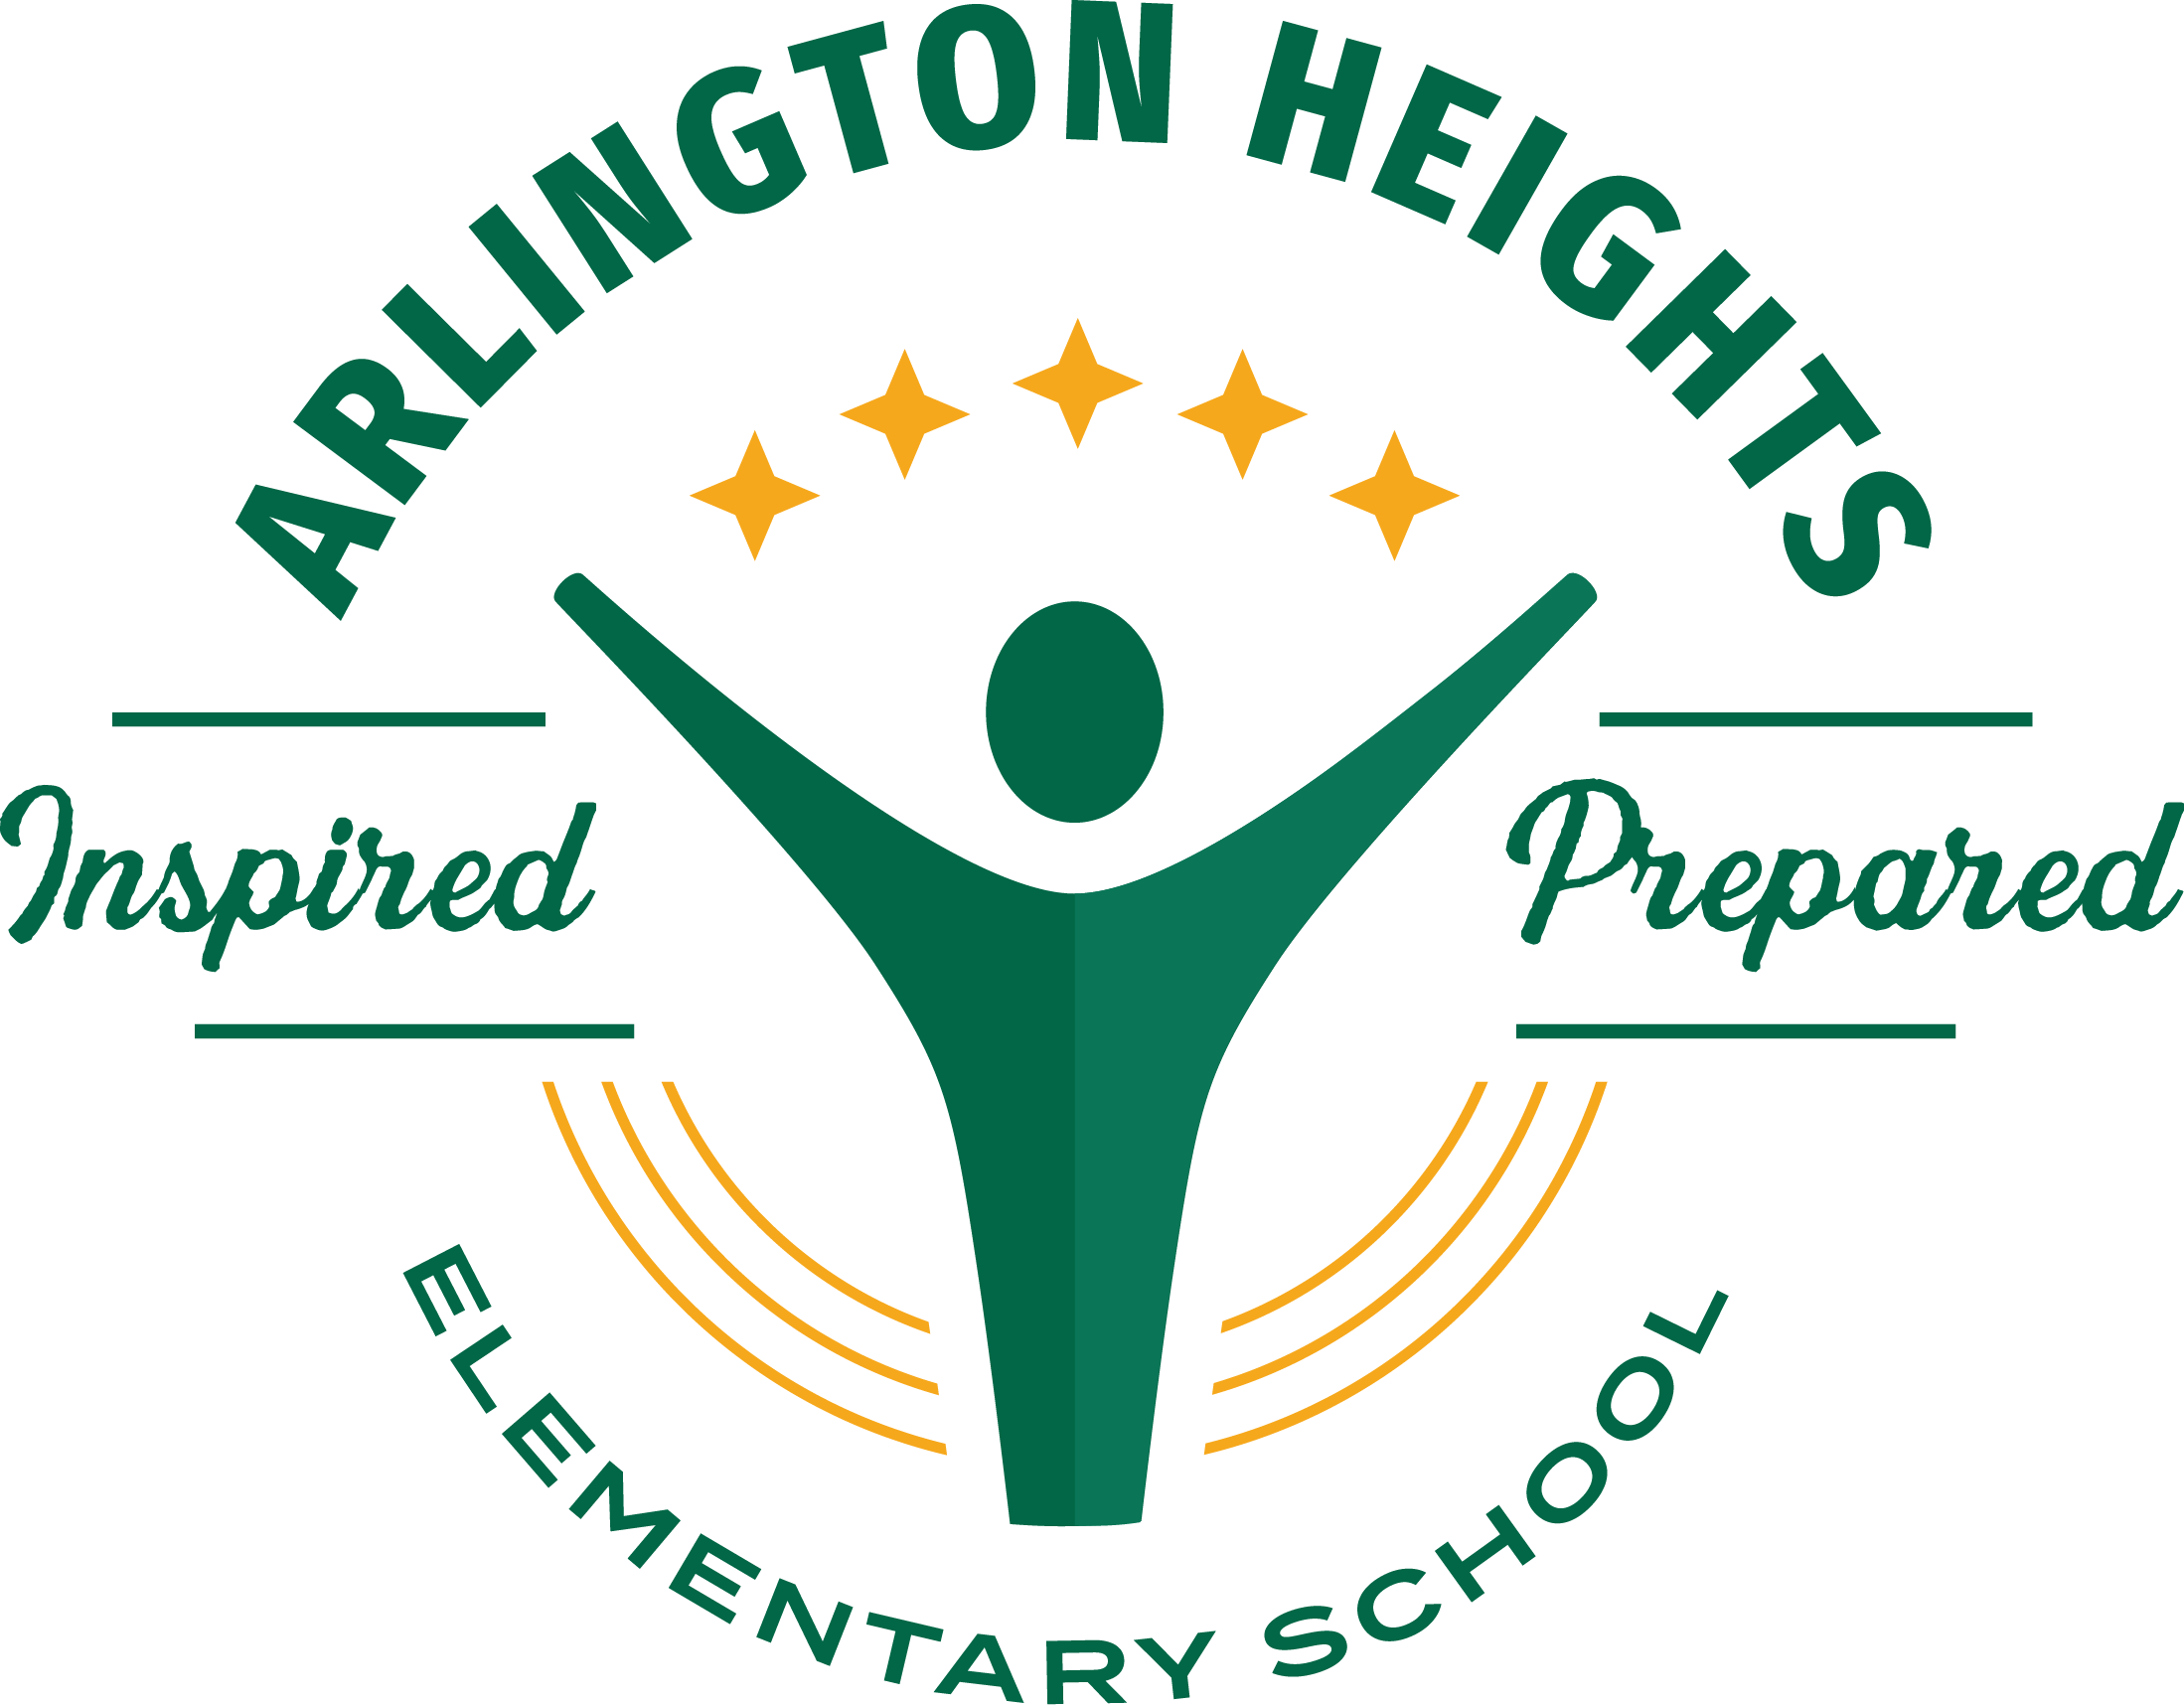 Arlington Heights Elementary Logo